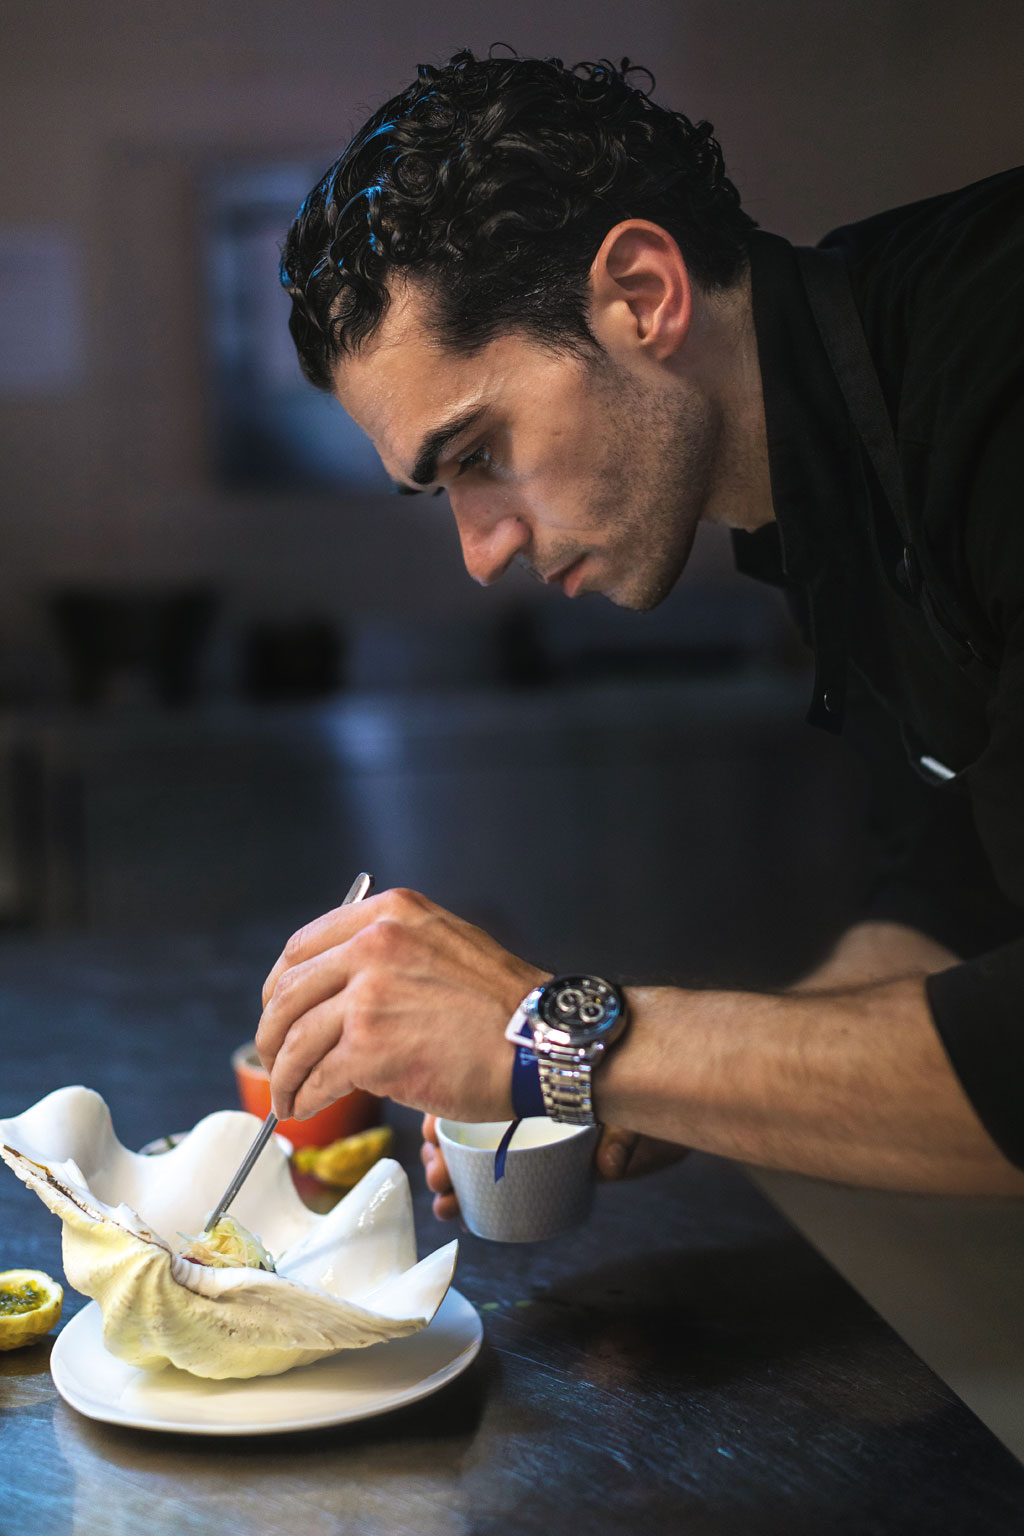 Chef Jozef Youssef